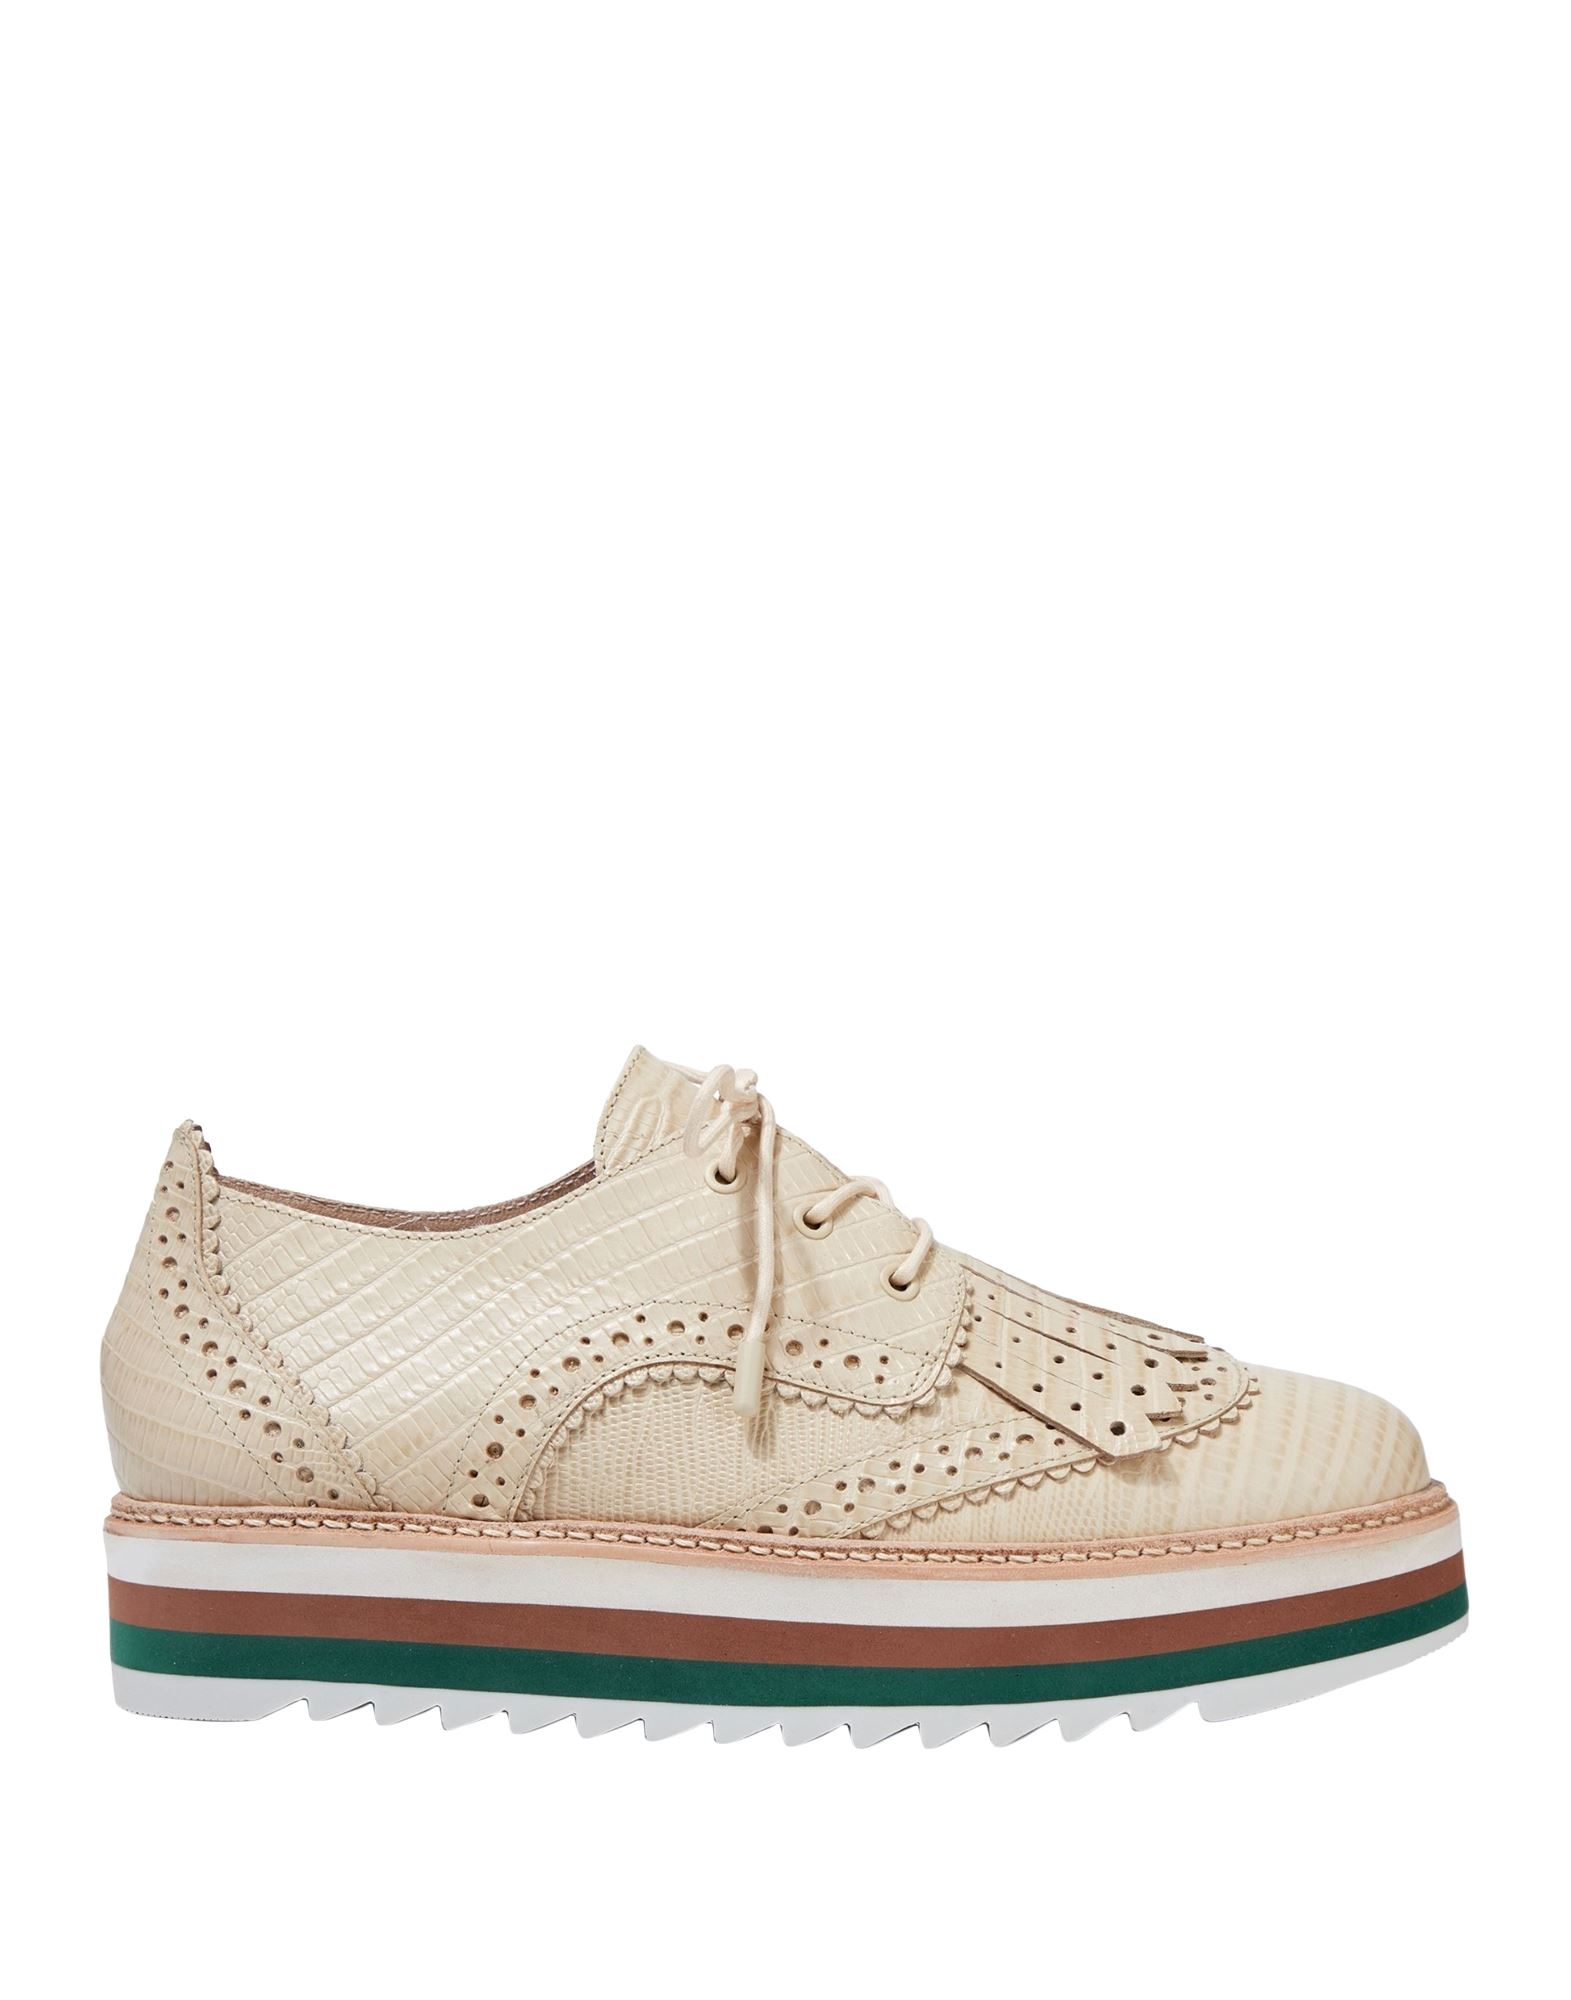 ZIMMERMANN Lace-up shoes. polished leather, fringed, solid color, round toeline, flatform, leather lining, rubber cleated sole, contains non-textile parts of animal origin. Soft Leather